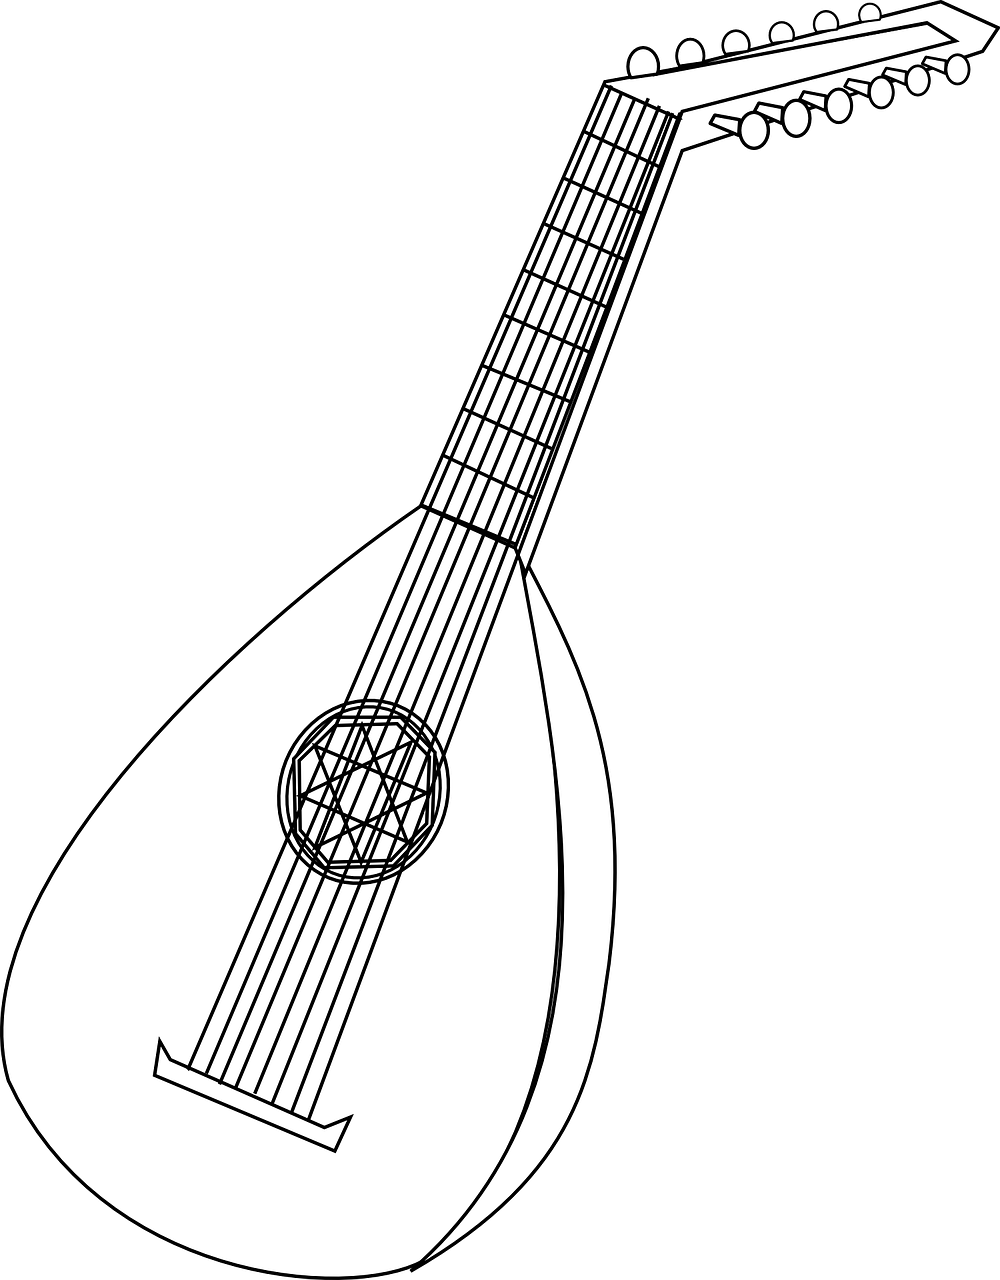 Lute graphic